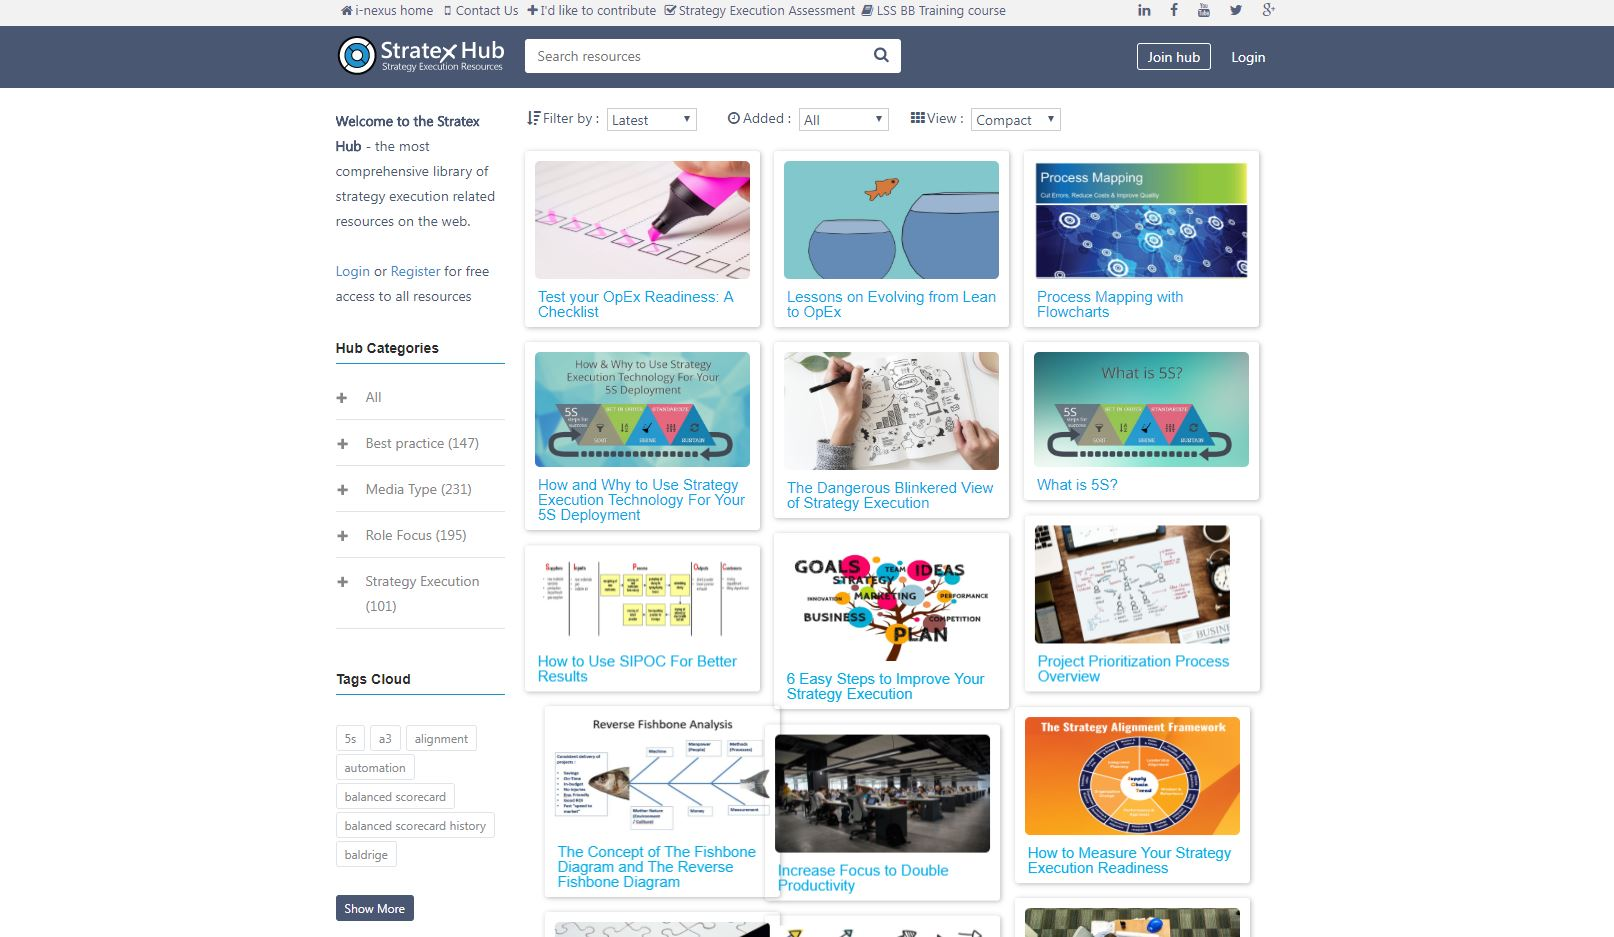 Stratex Hub - Library Of Best Strategy Execution Practice Resources